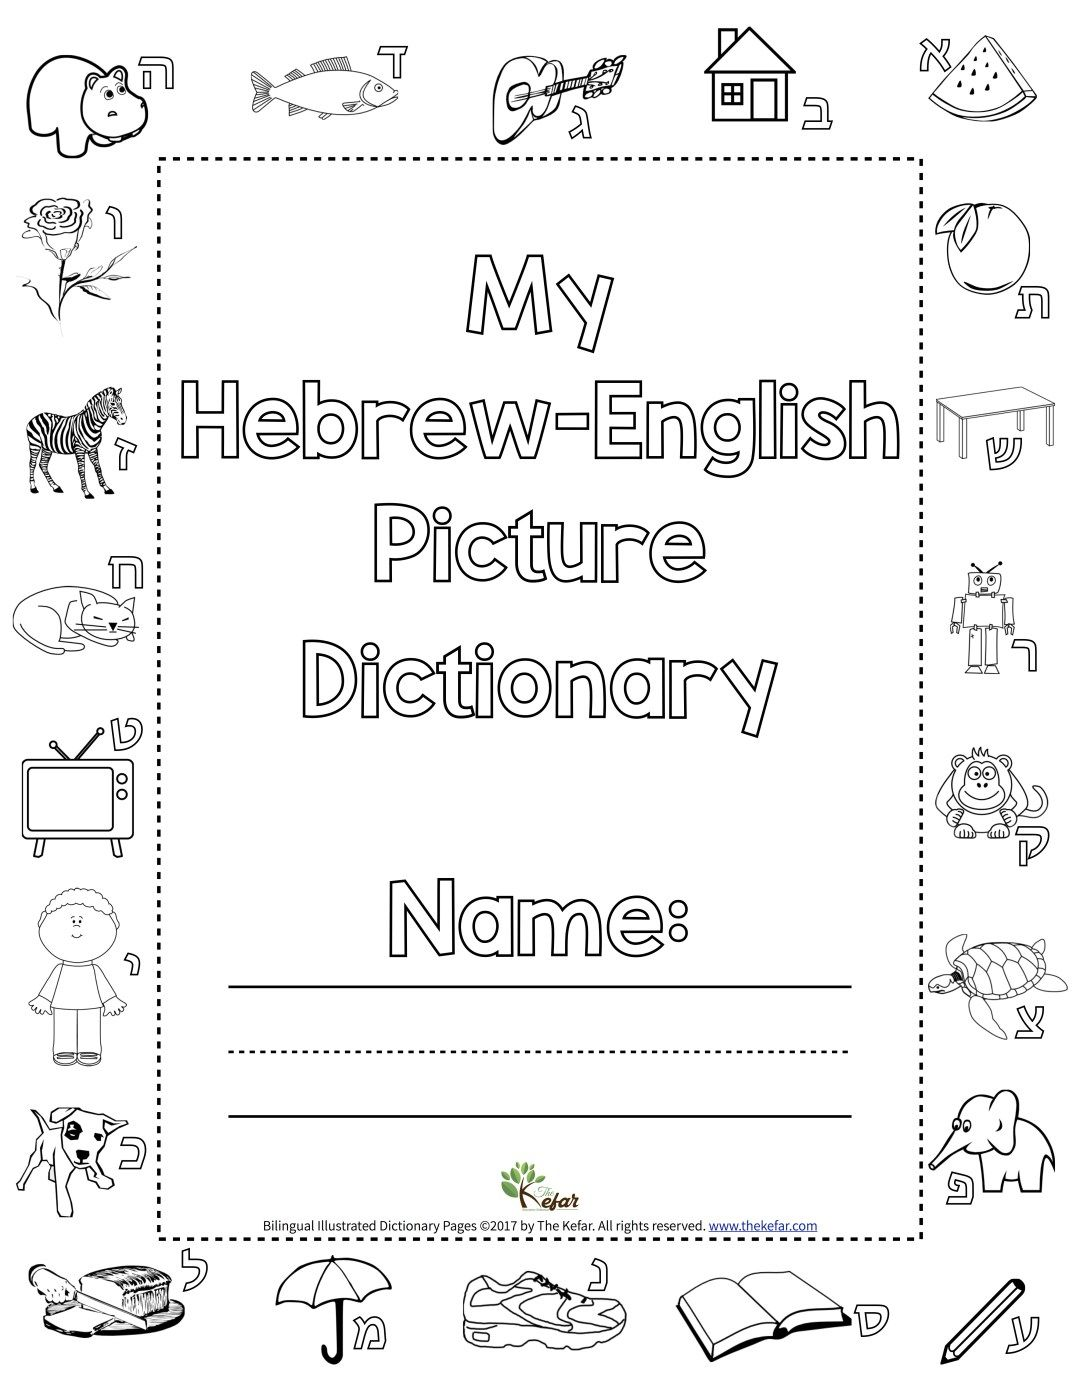 Hebrew Amp English Bilingual Picture Dictionary Templates